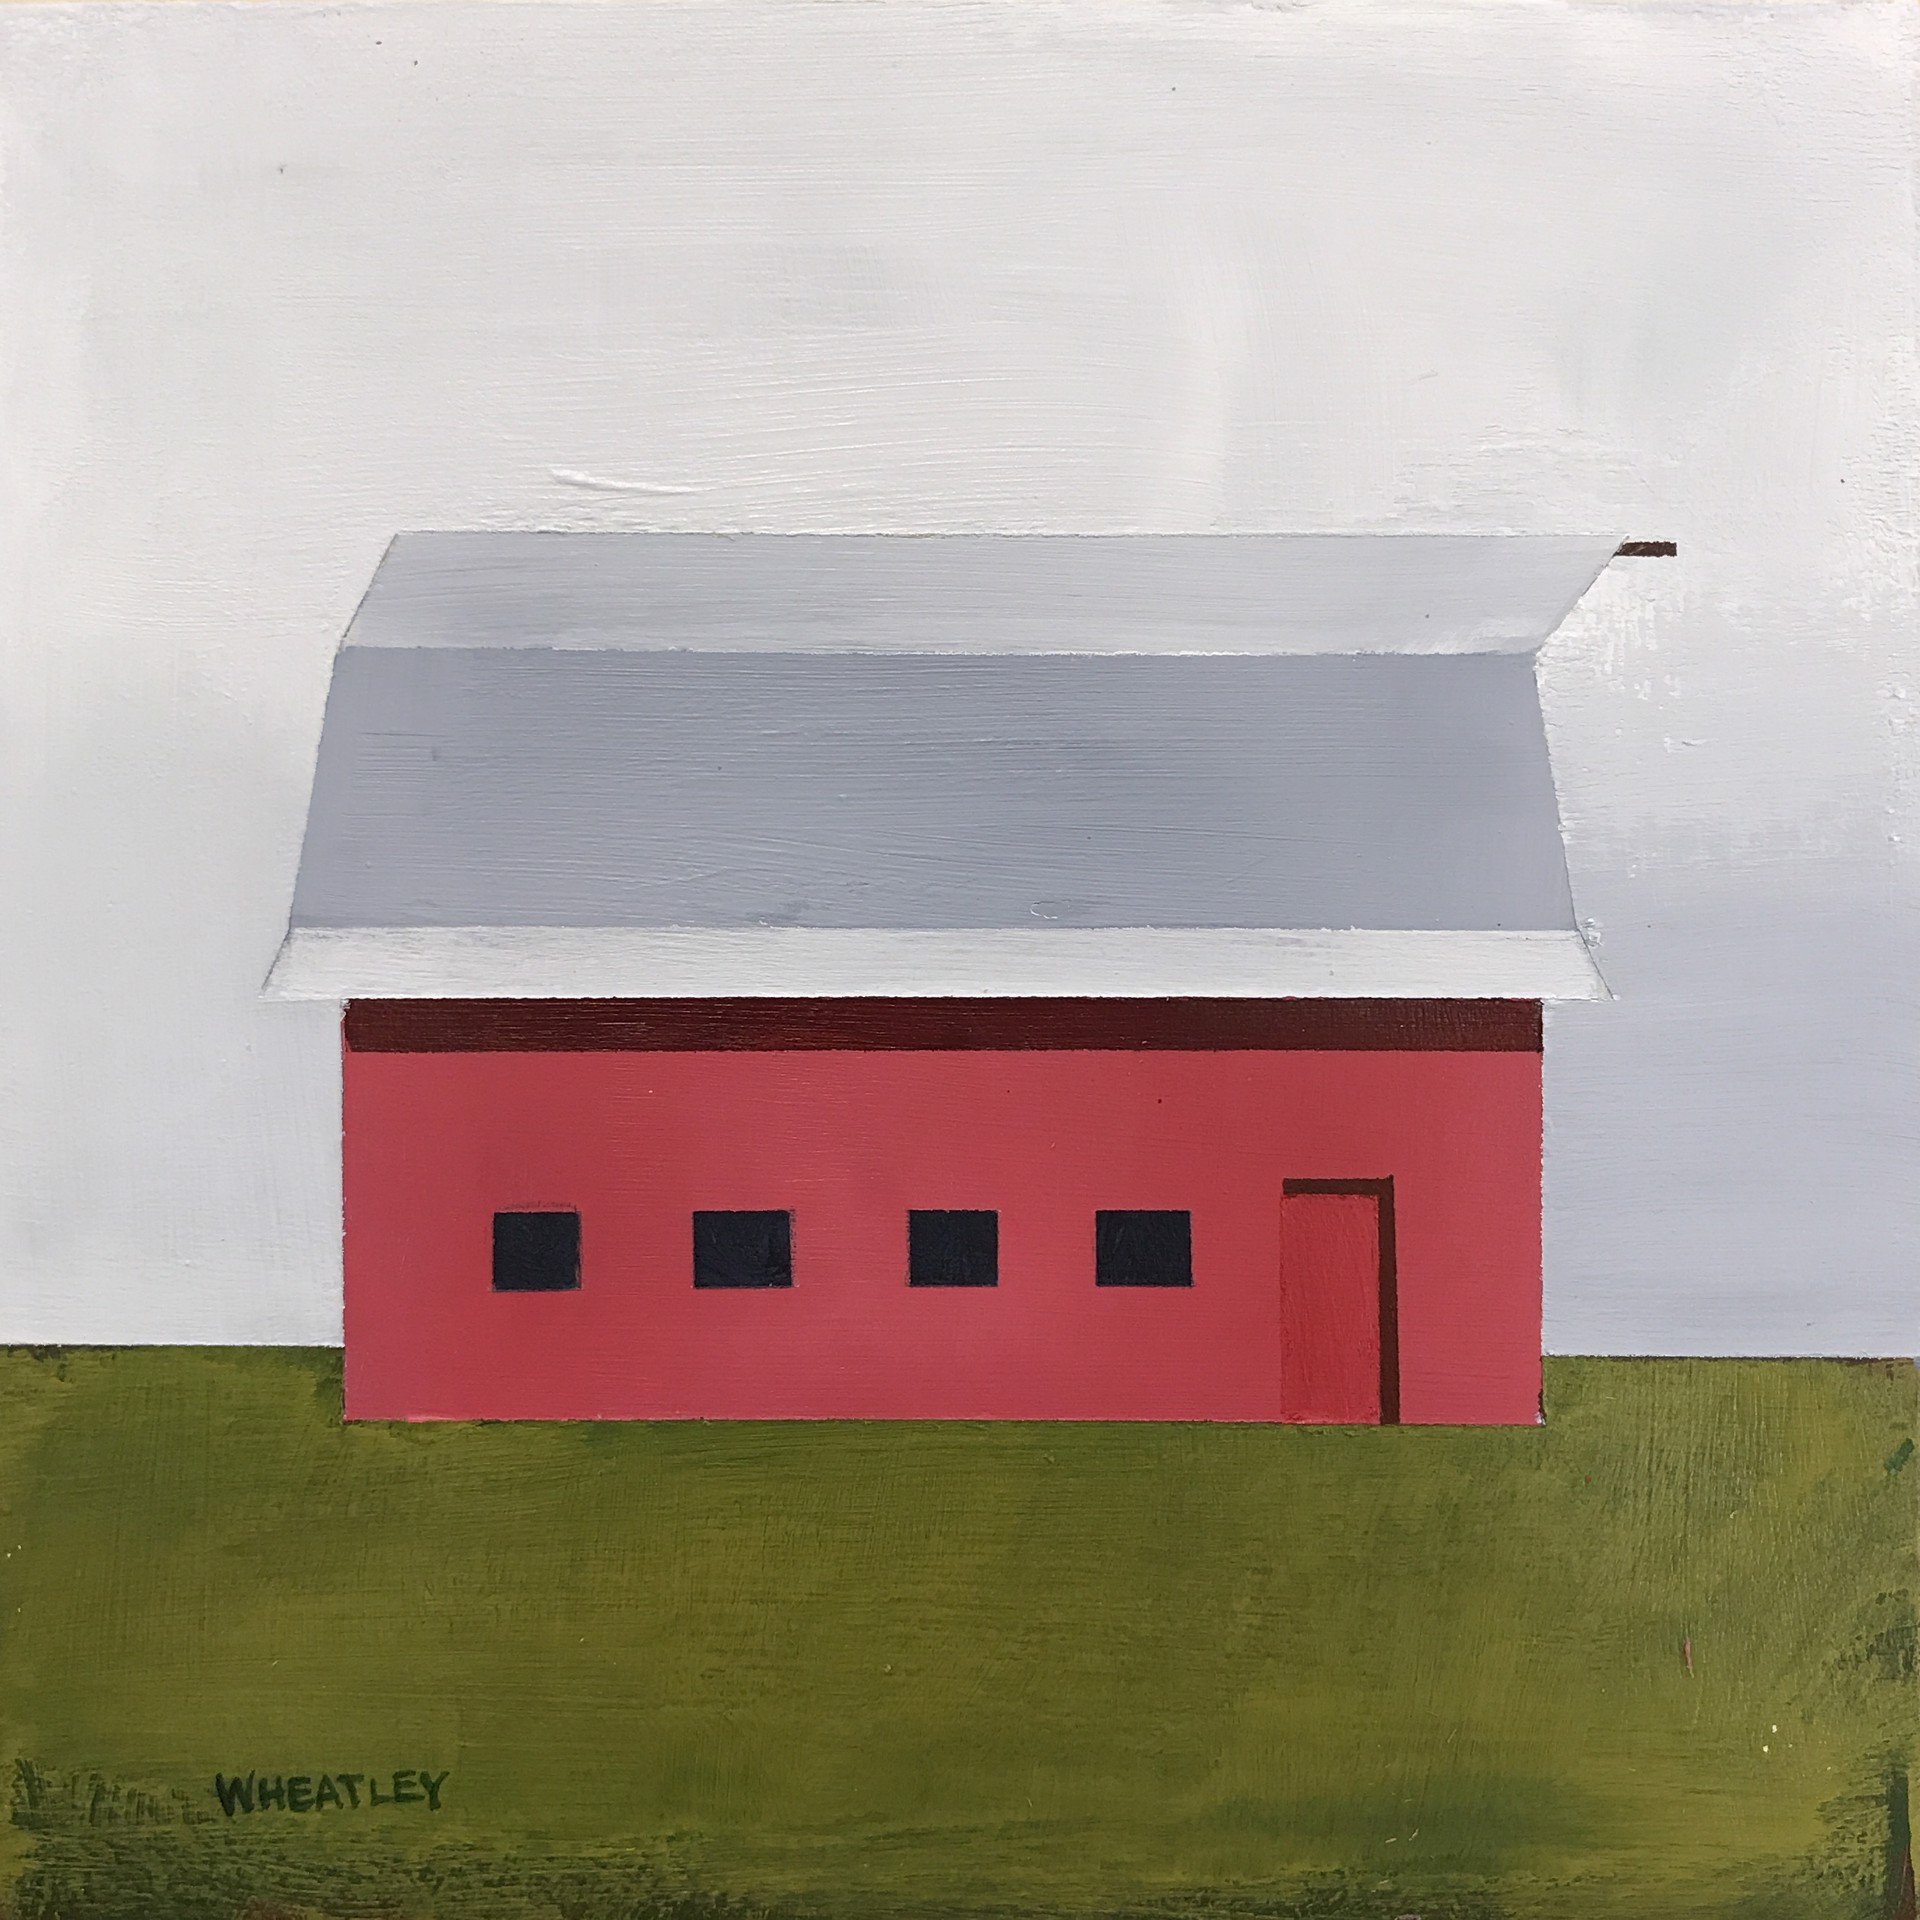 Red Barn 6 by Justin Wheatley